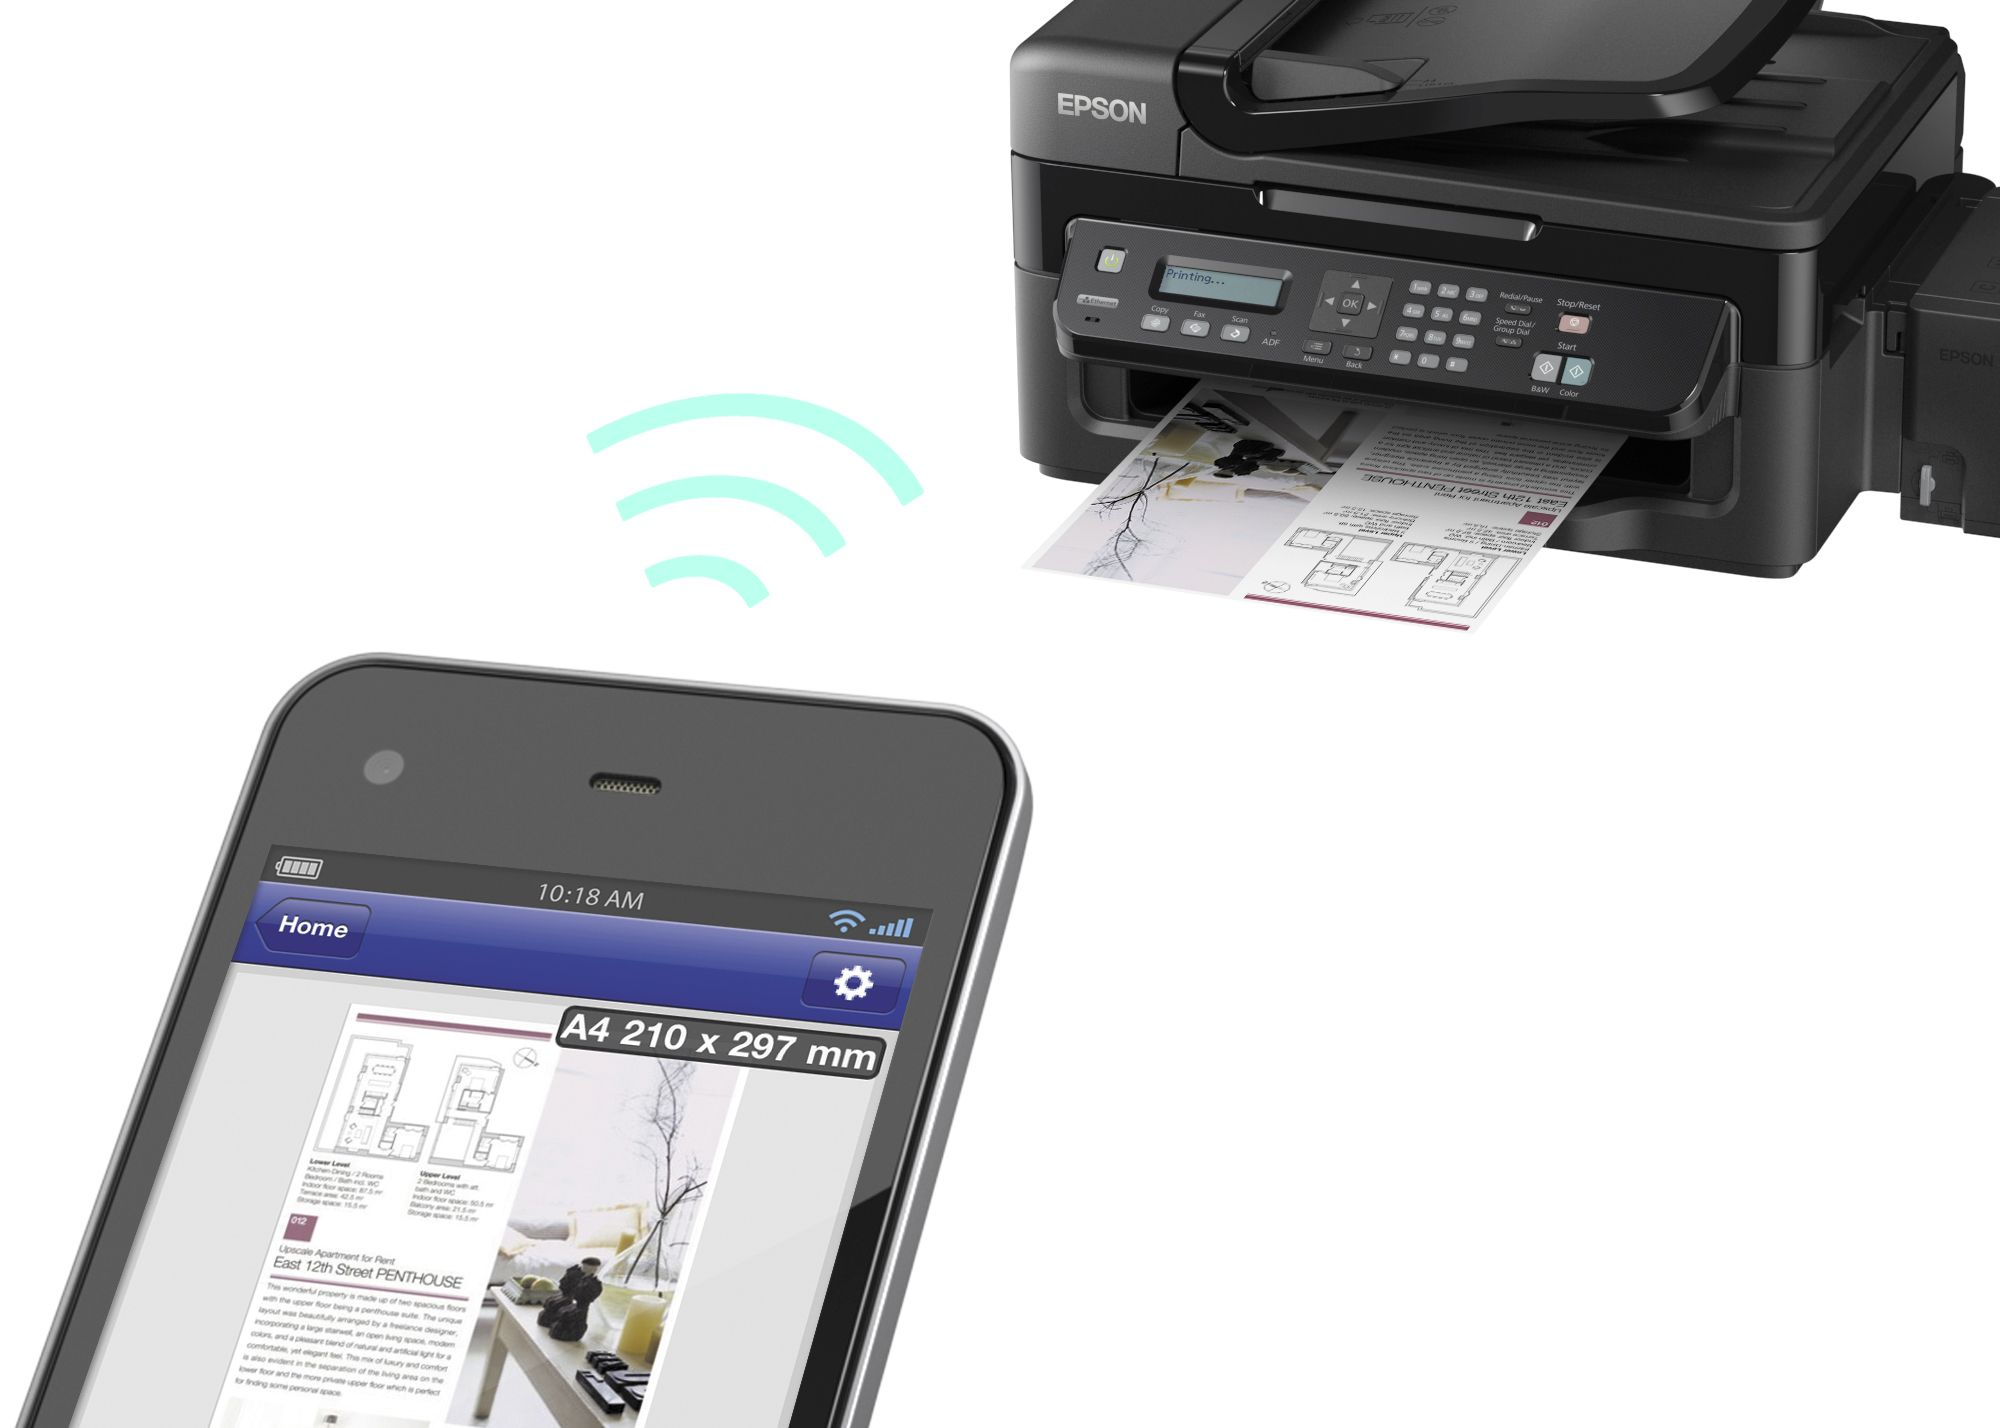 Epson Connect The Latest Addition To Remote Printing